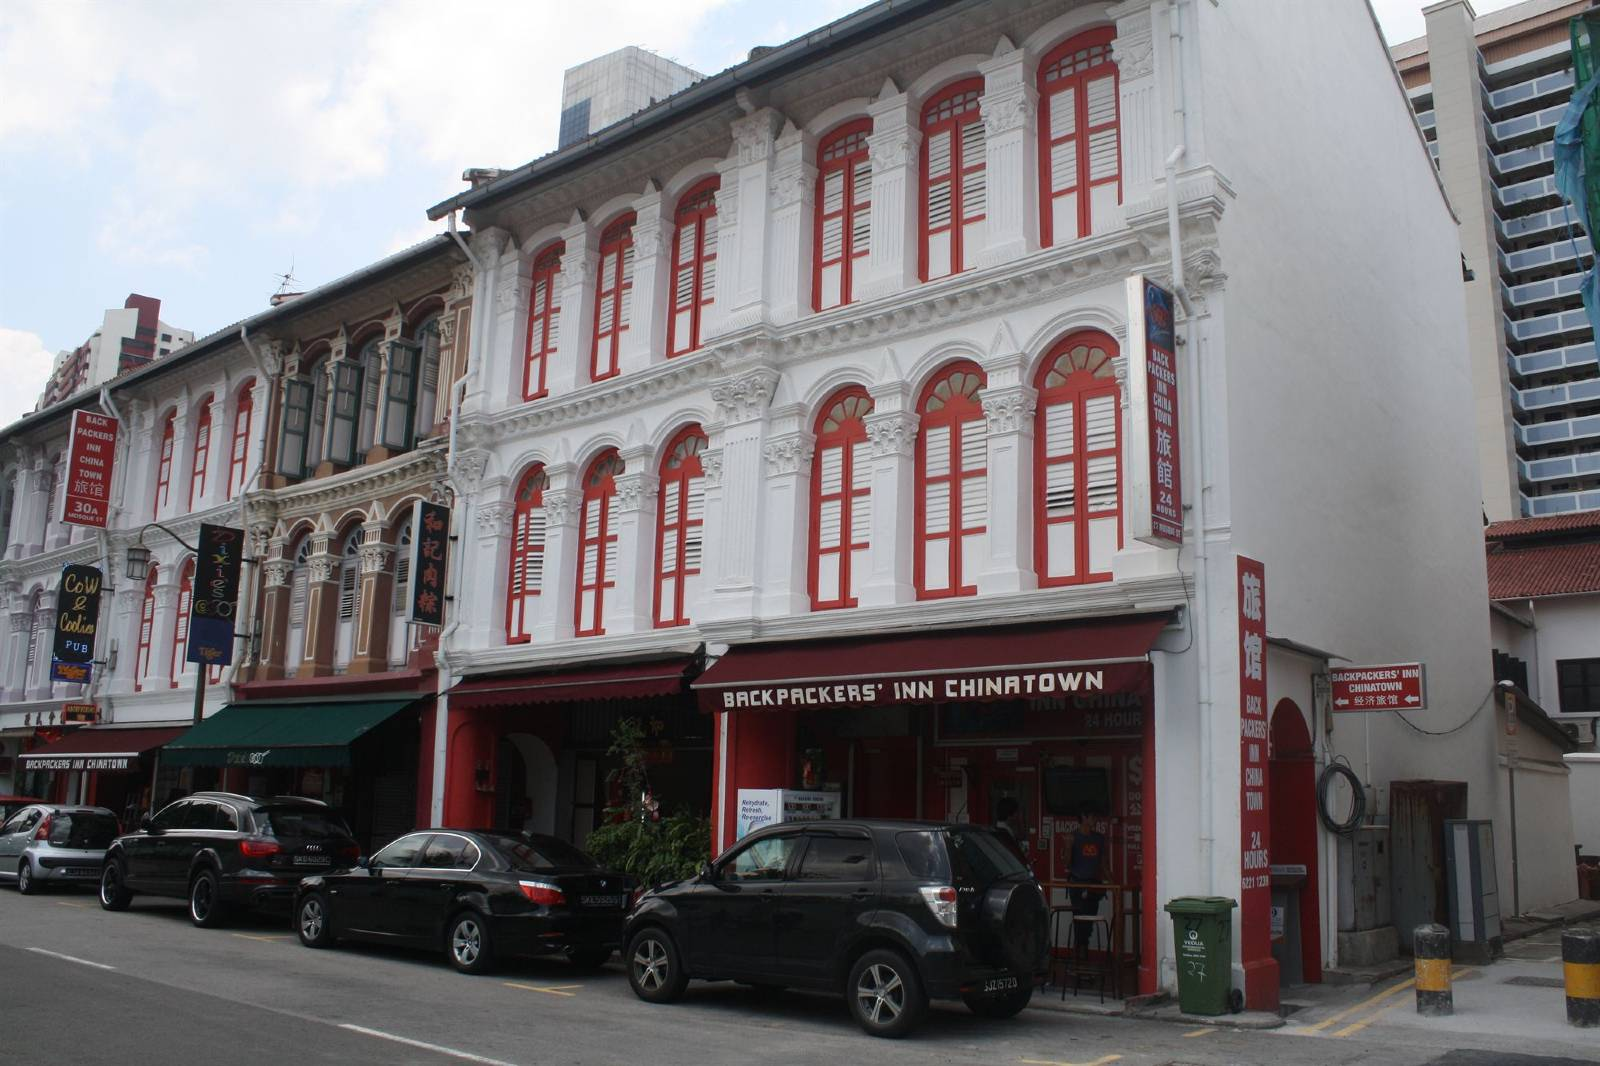 Backpackers! Inn Chinatown Singapore